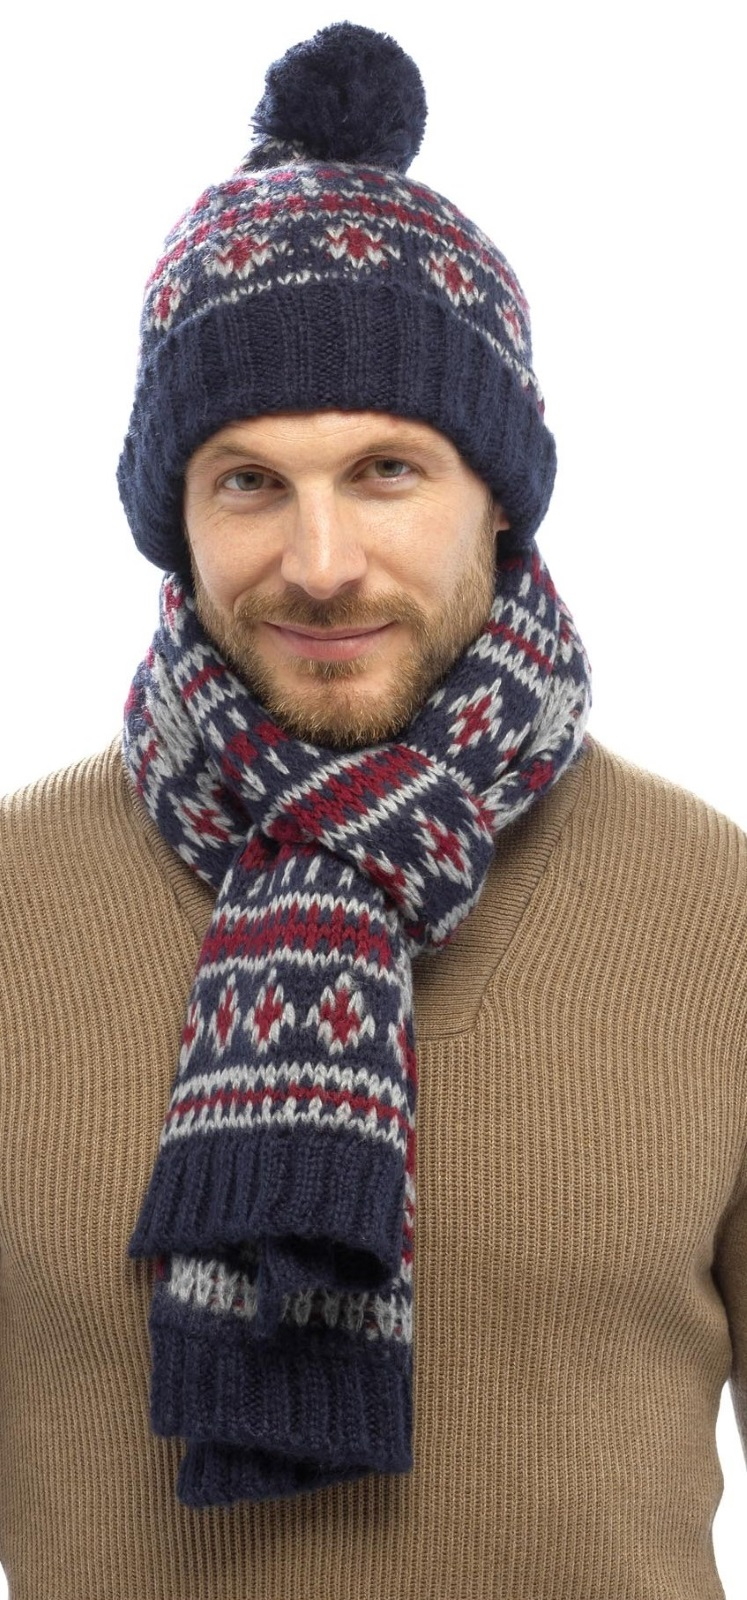 Shop for men's scarves, hats and gloves. Men's Wearhouse has leather gloves, wool scarves, cashmere scarves, and more clothing accessories.